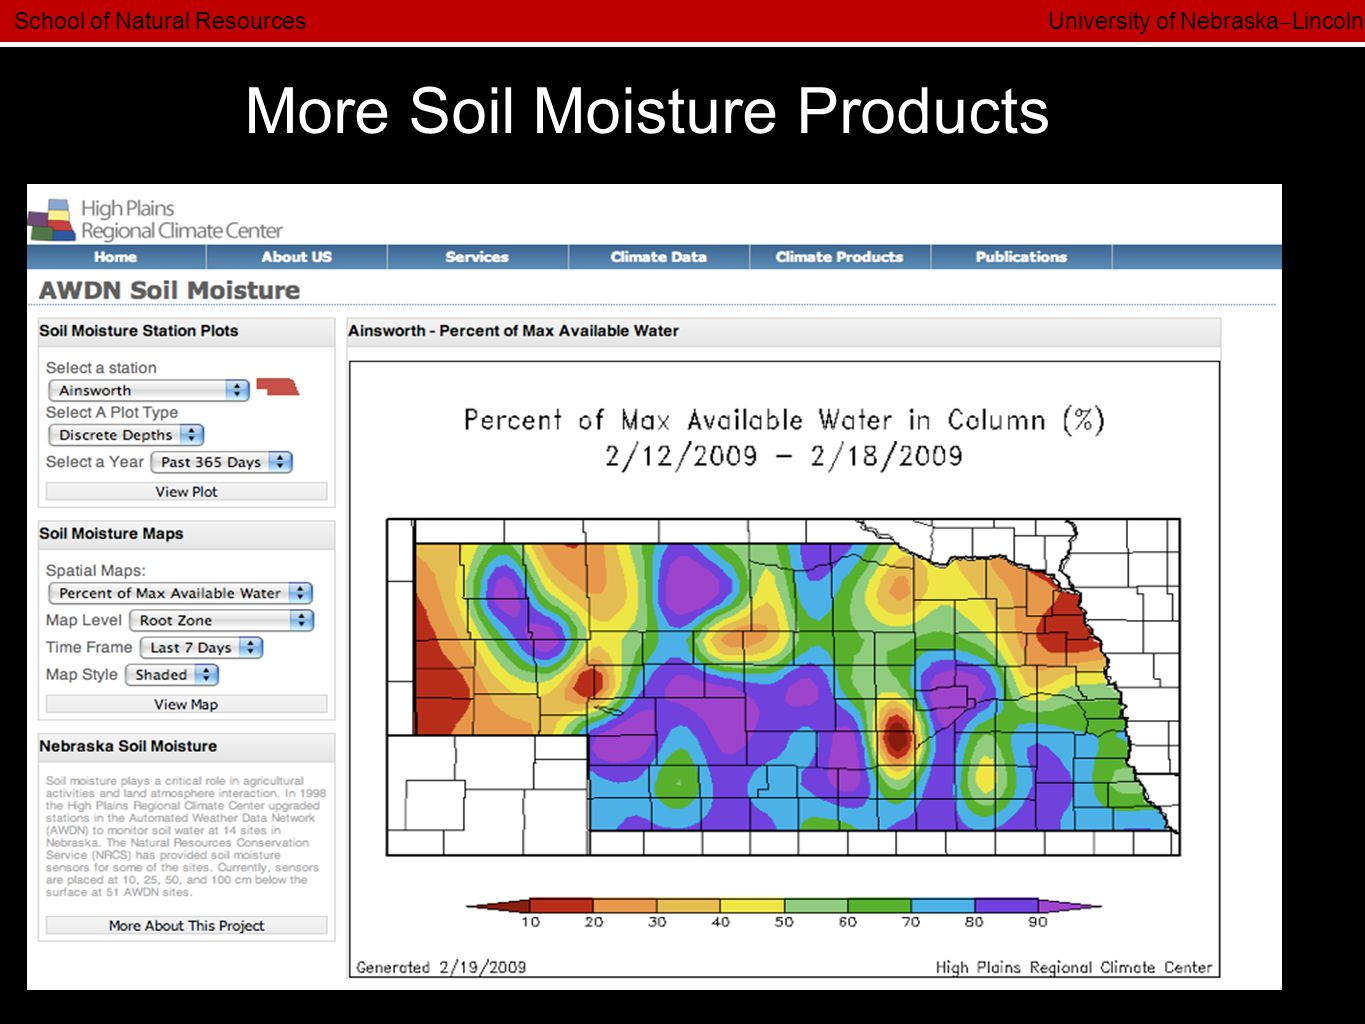 School of Natural Resources University of Nebraska  Lincoln More Soil Moisture Products